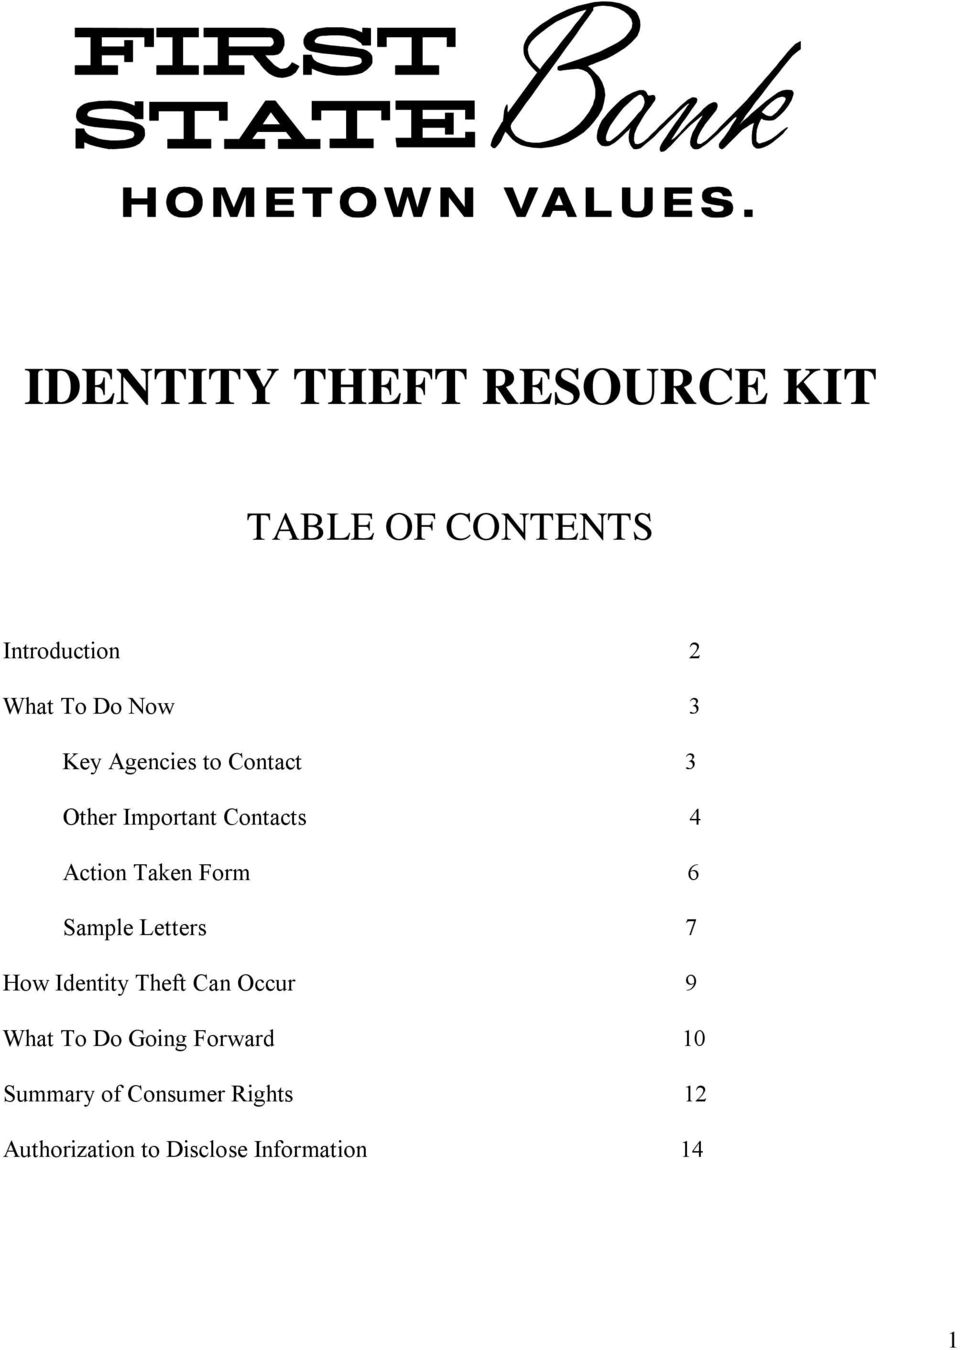 Form 6 Sample Letters 7 How Identity Theft Can Occur 9 What To Do Going